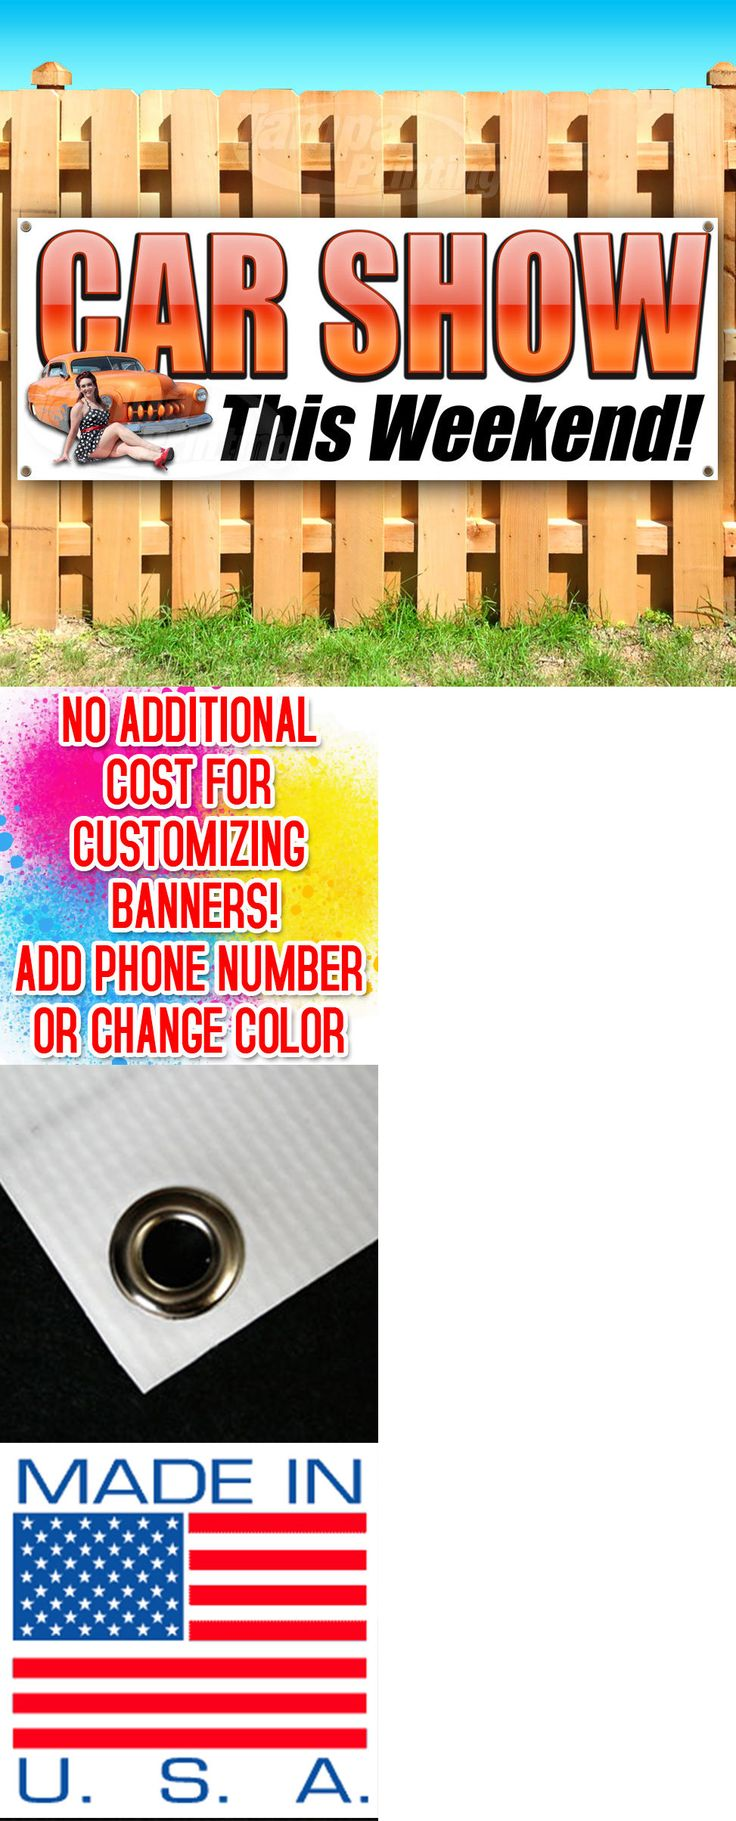 Other Crafts 75576: Car Show This Weekend Advertising Vinyl Banner Flag Sign Many Sizes Usa -> BUY IT NOW ONLY: $31.49 on eBay!